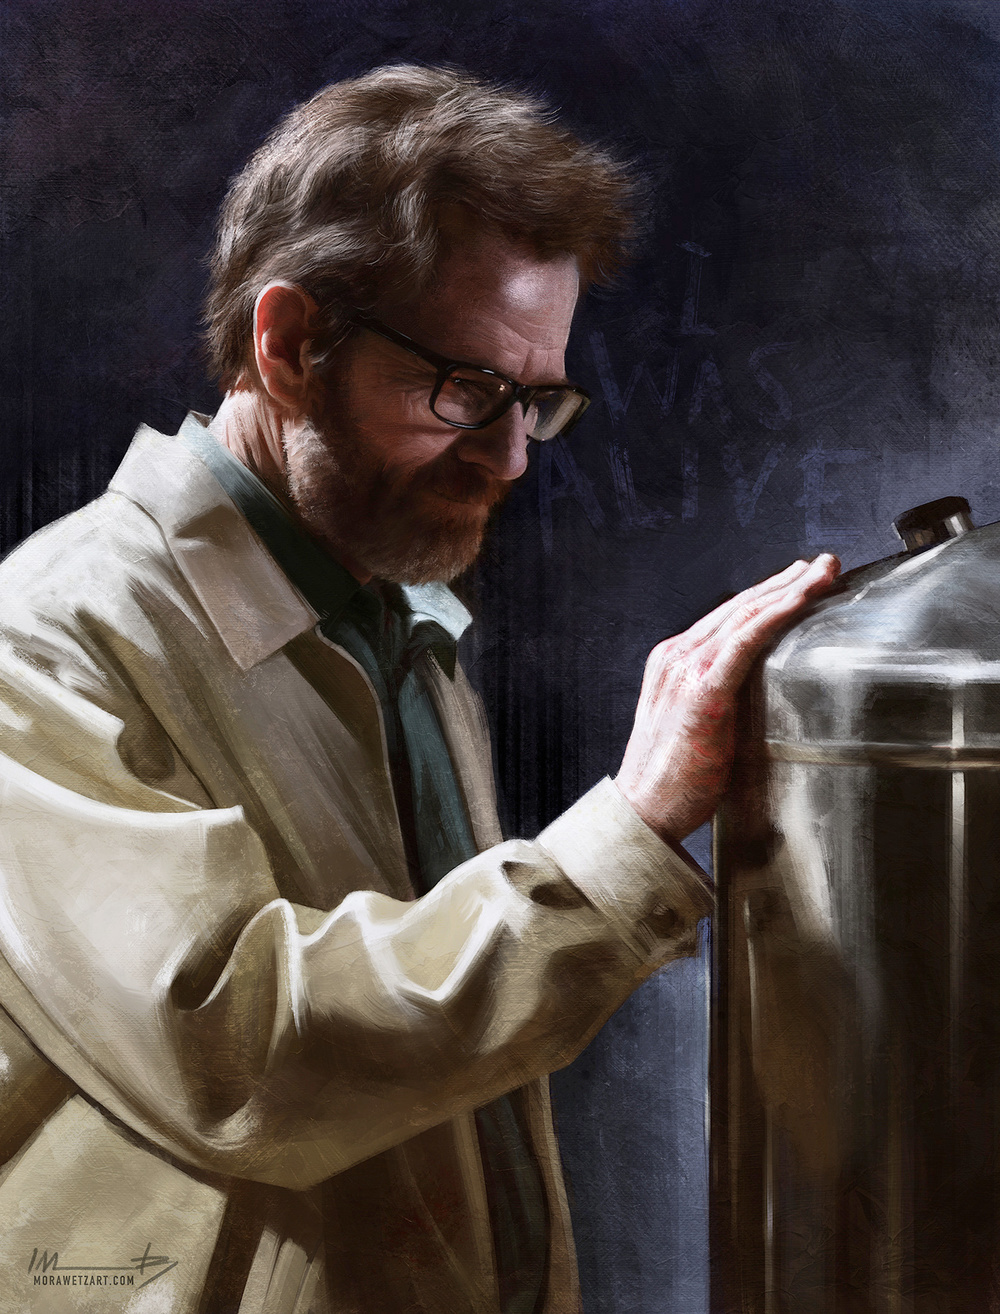 emotional-breaking-bad-art-by-isabella-morawetz.jpg